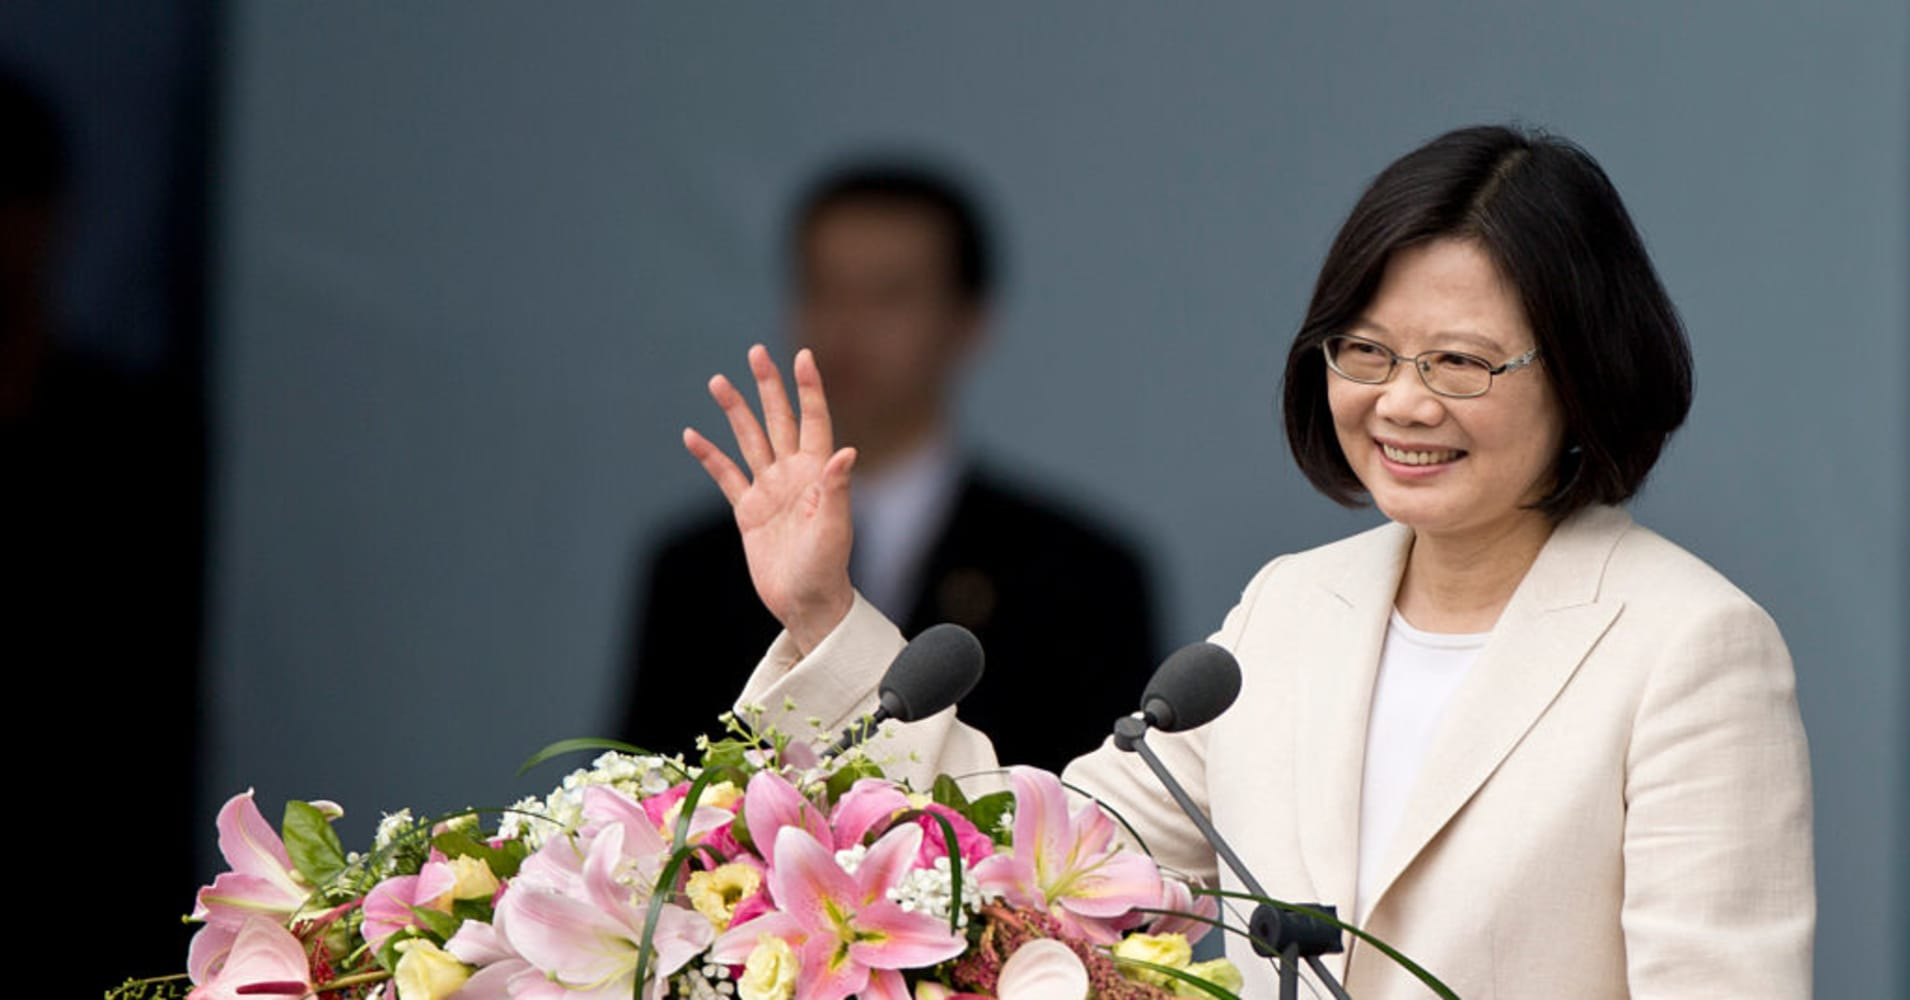 Taiwan's weekend vote will be a test for its president, as China looks on